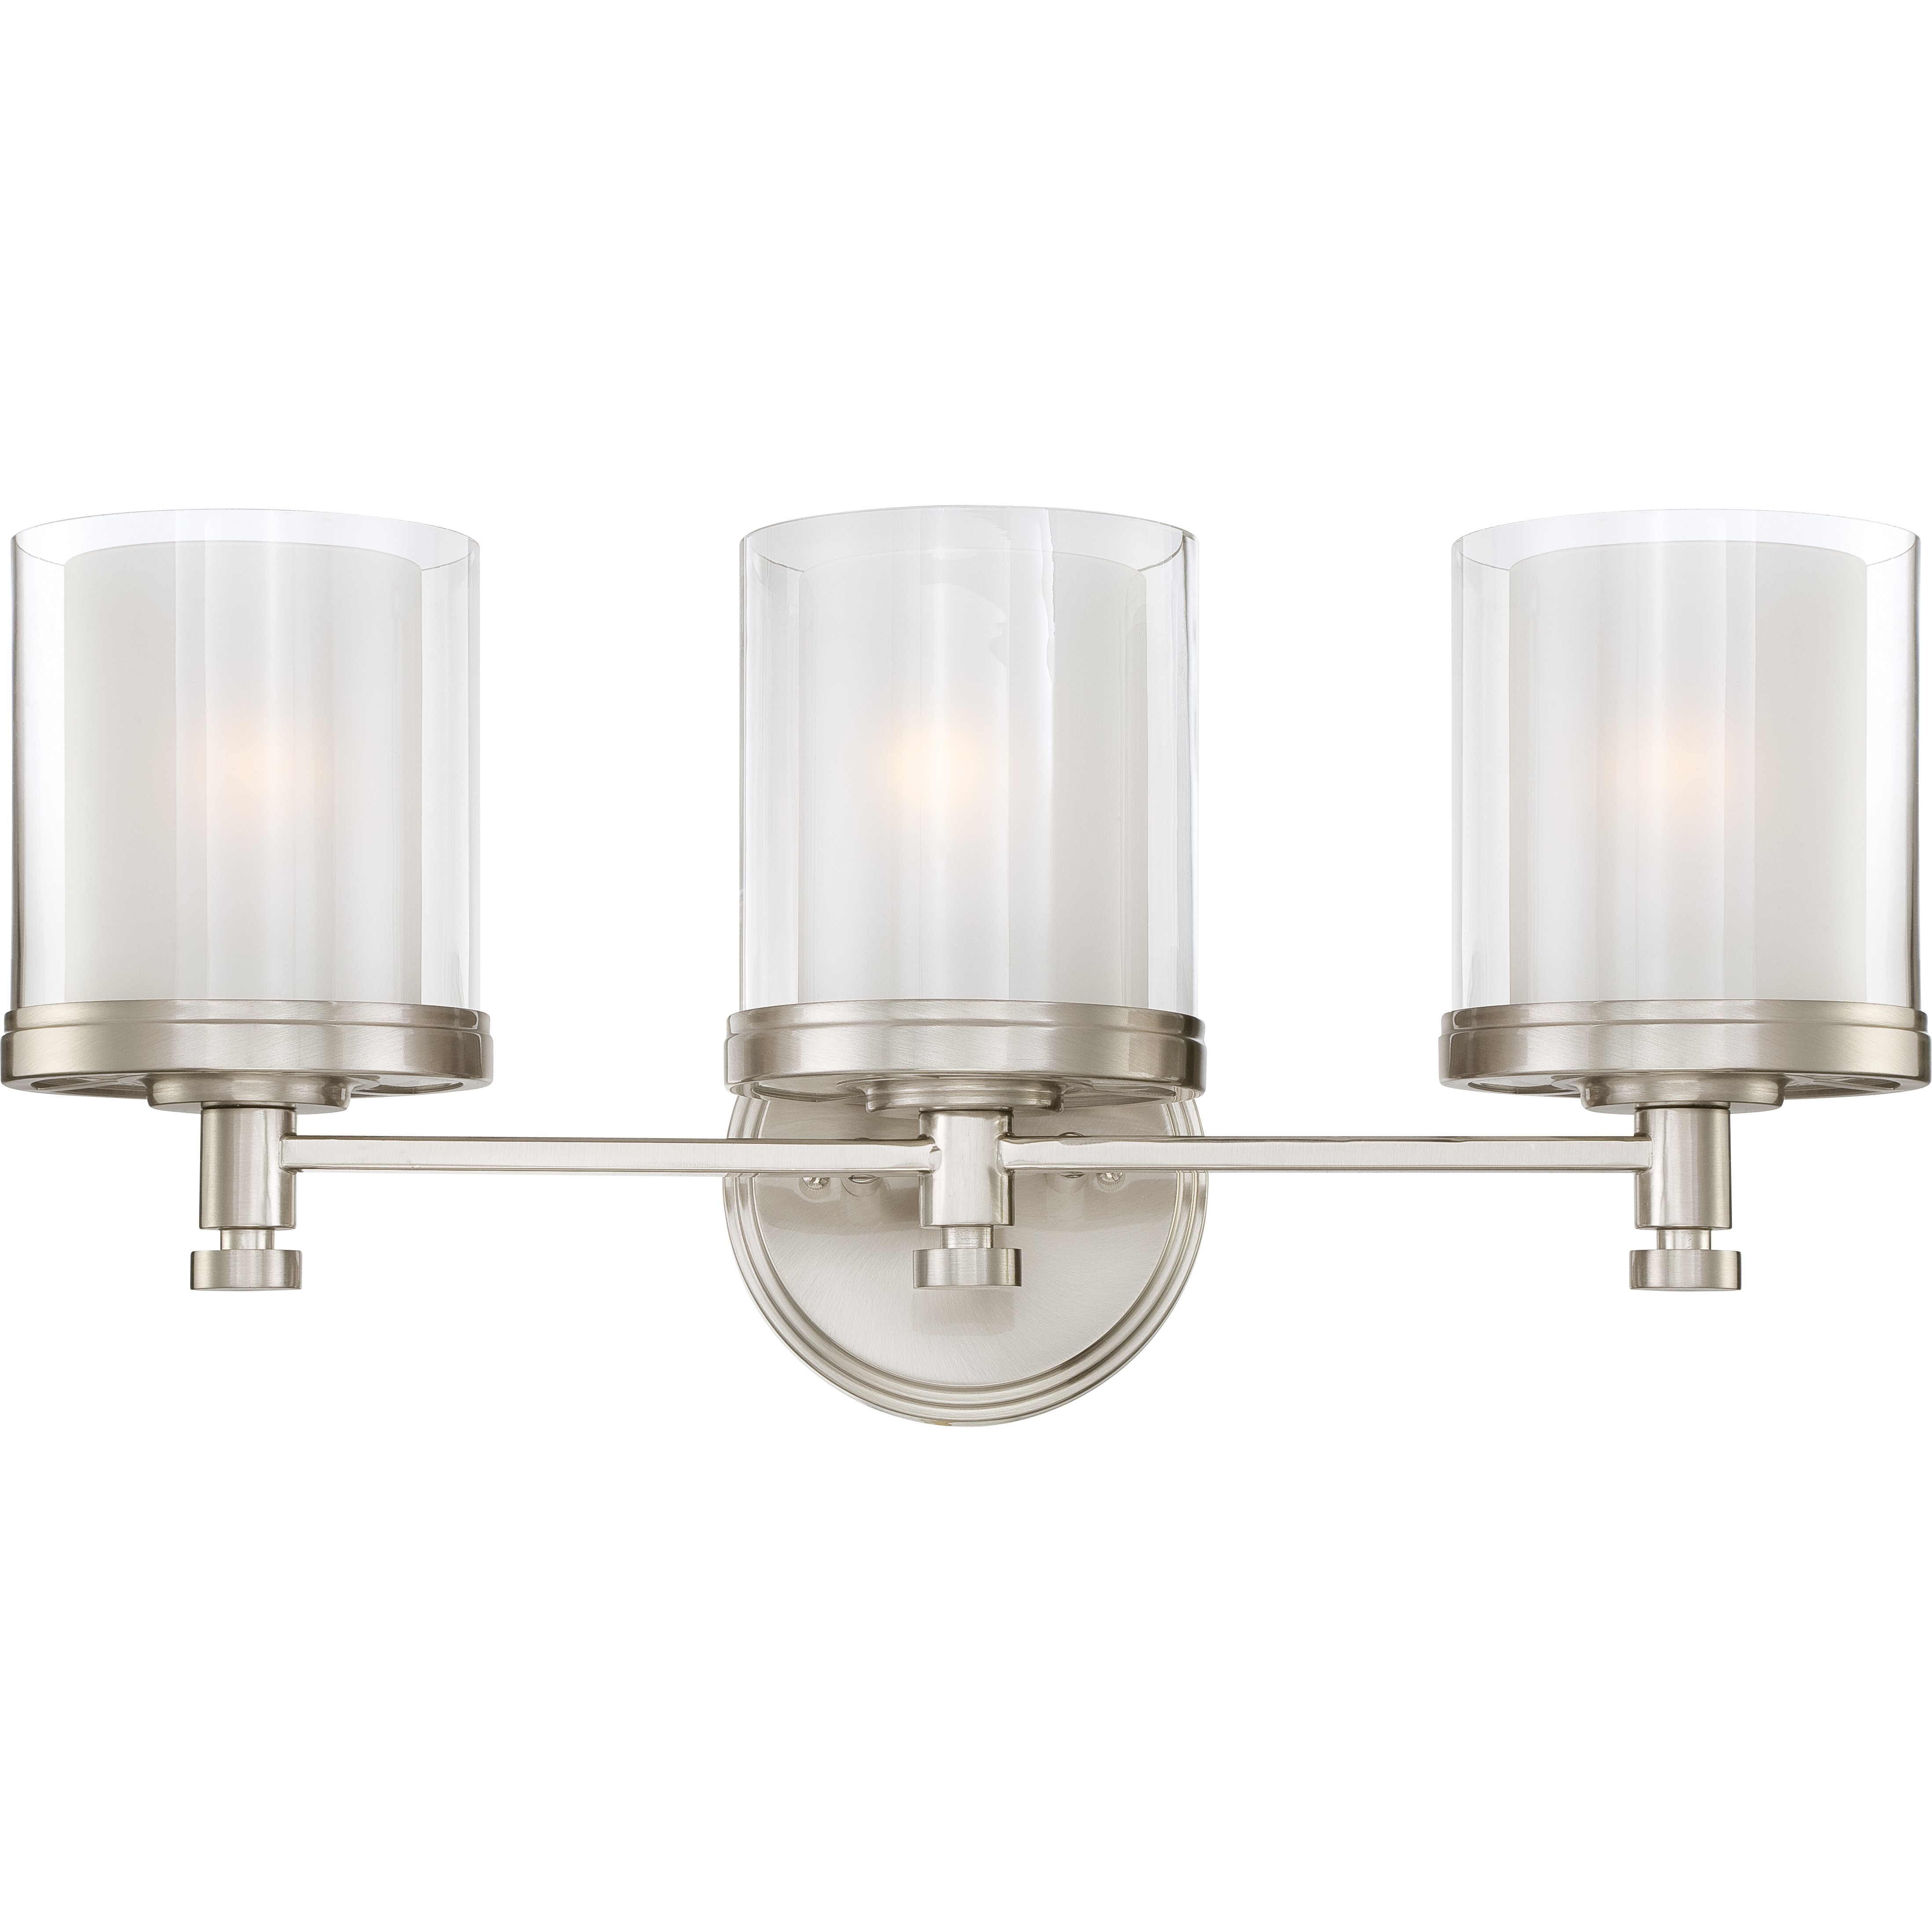 cozy nuvo lighting 3 Light Vanity Light Fixture in Brushed Nickel for bathroom lighting ideas